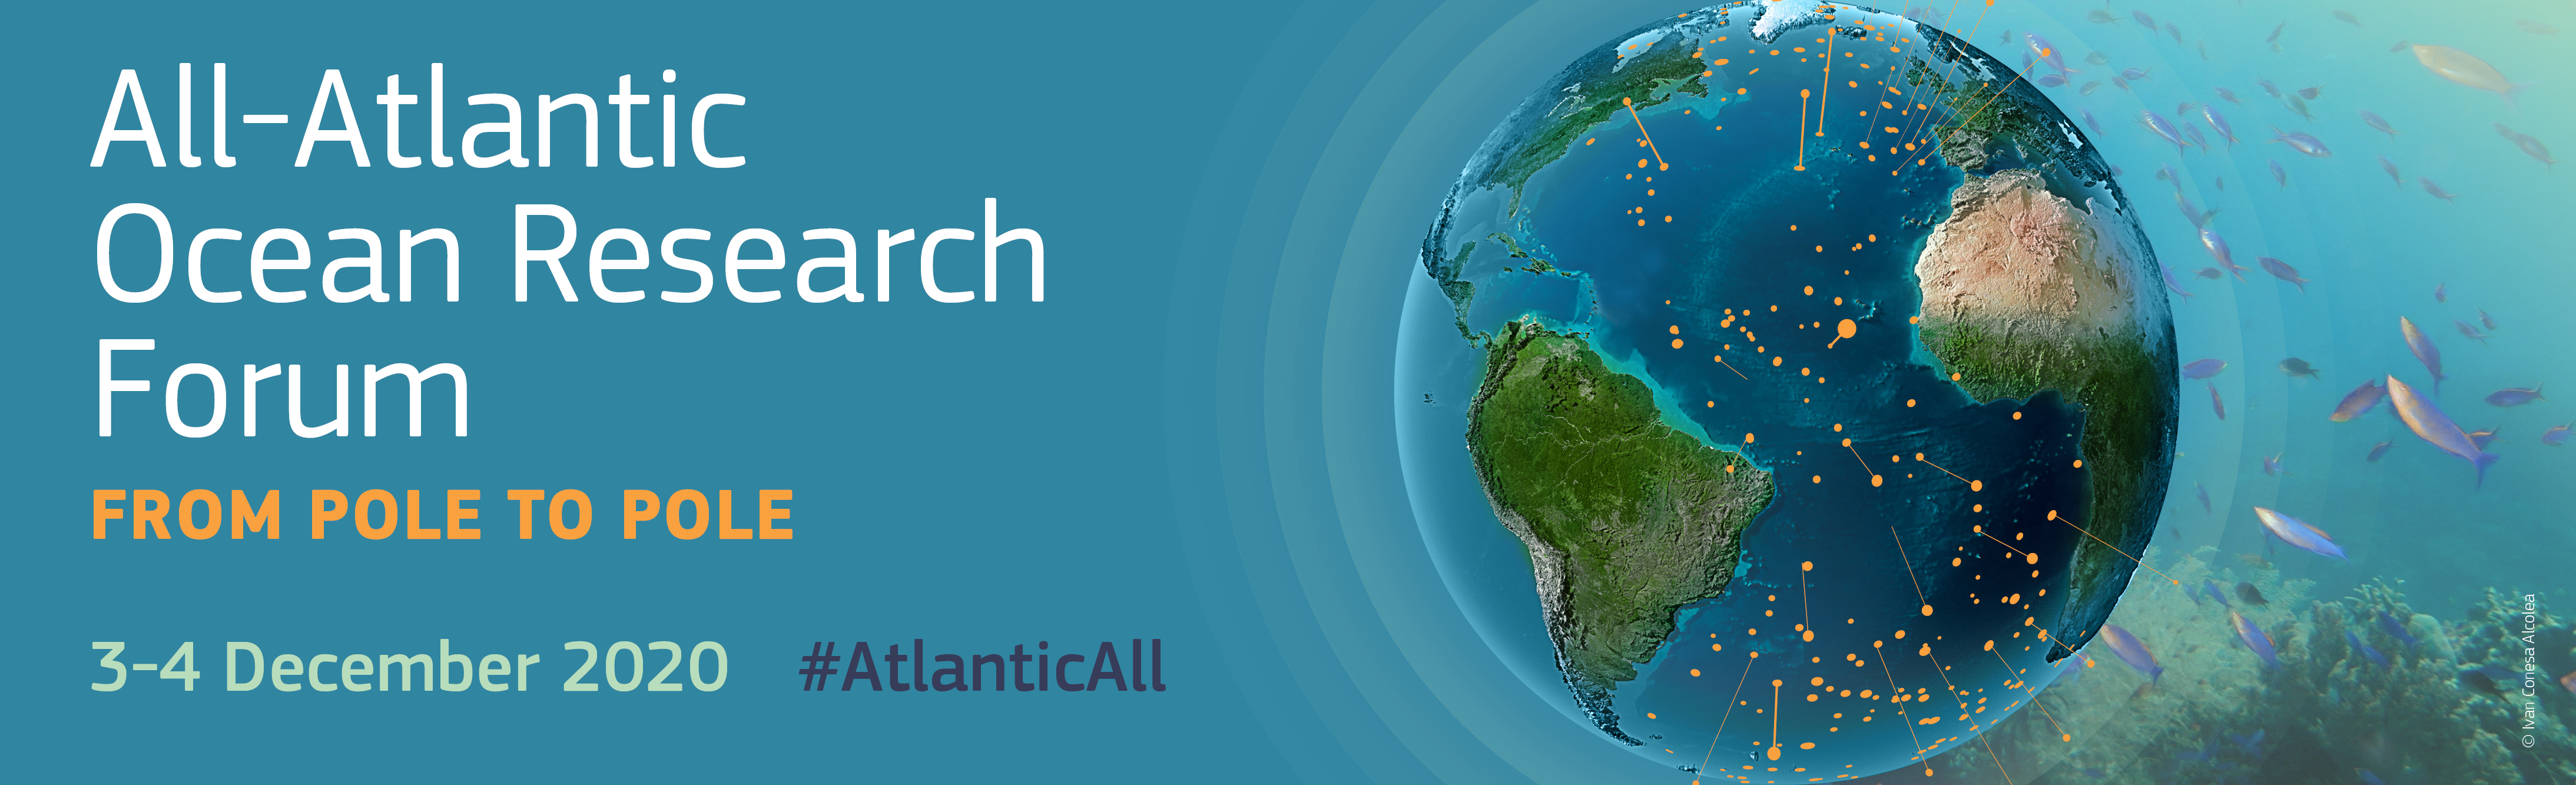 All-Atlantic Ocean Research Conference